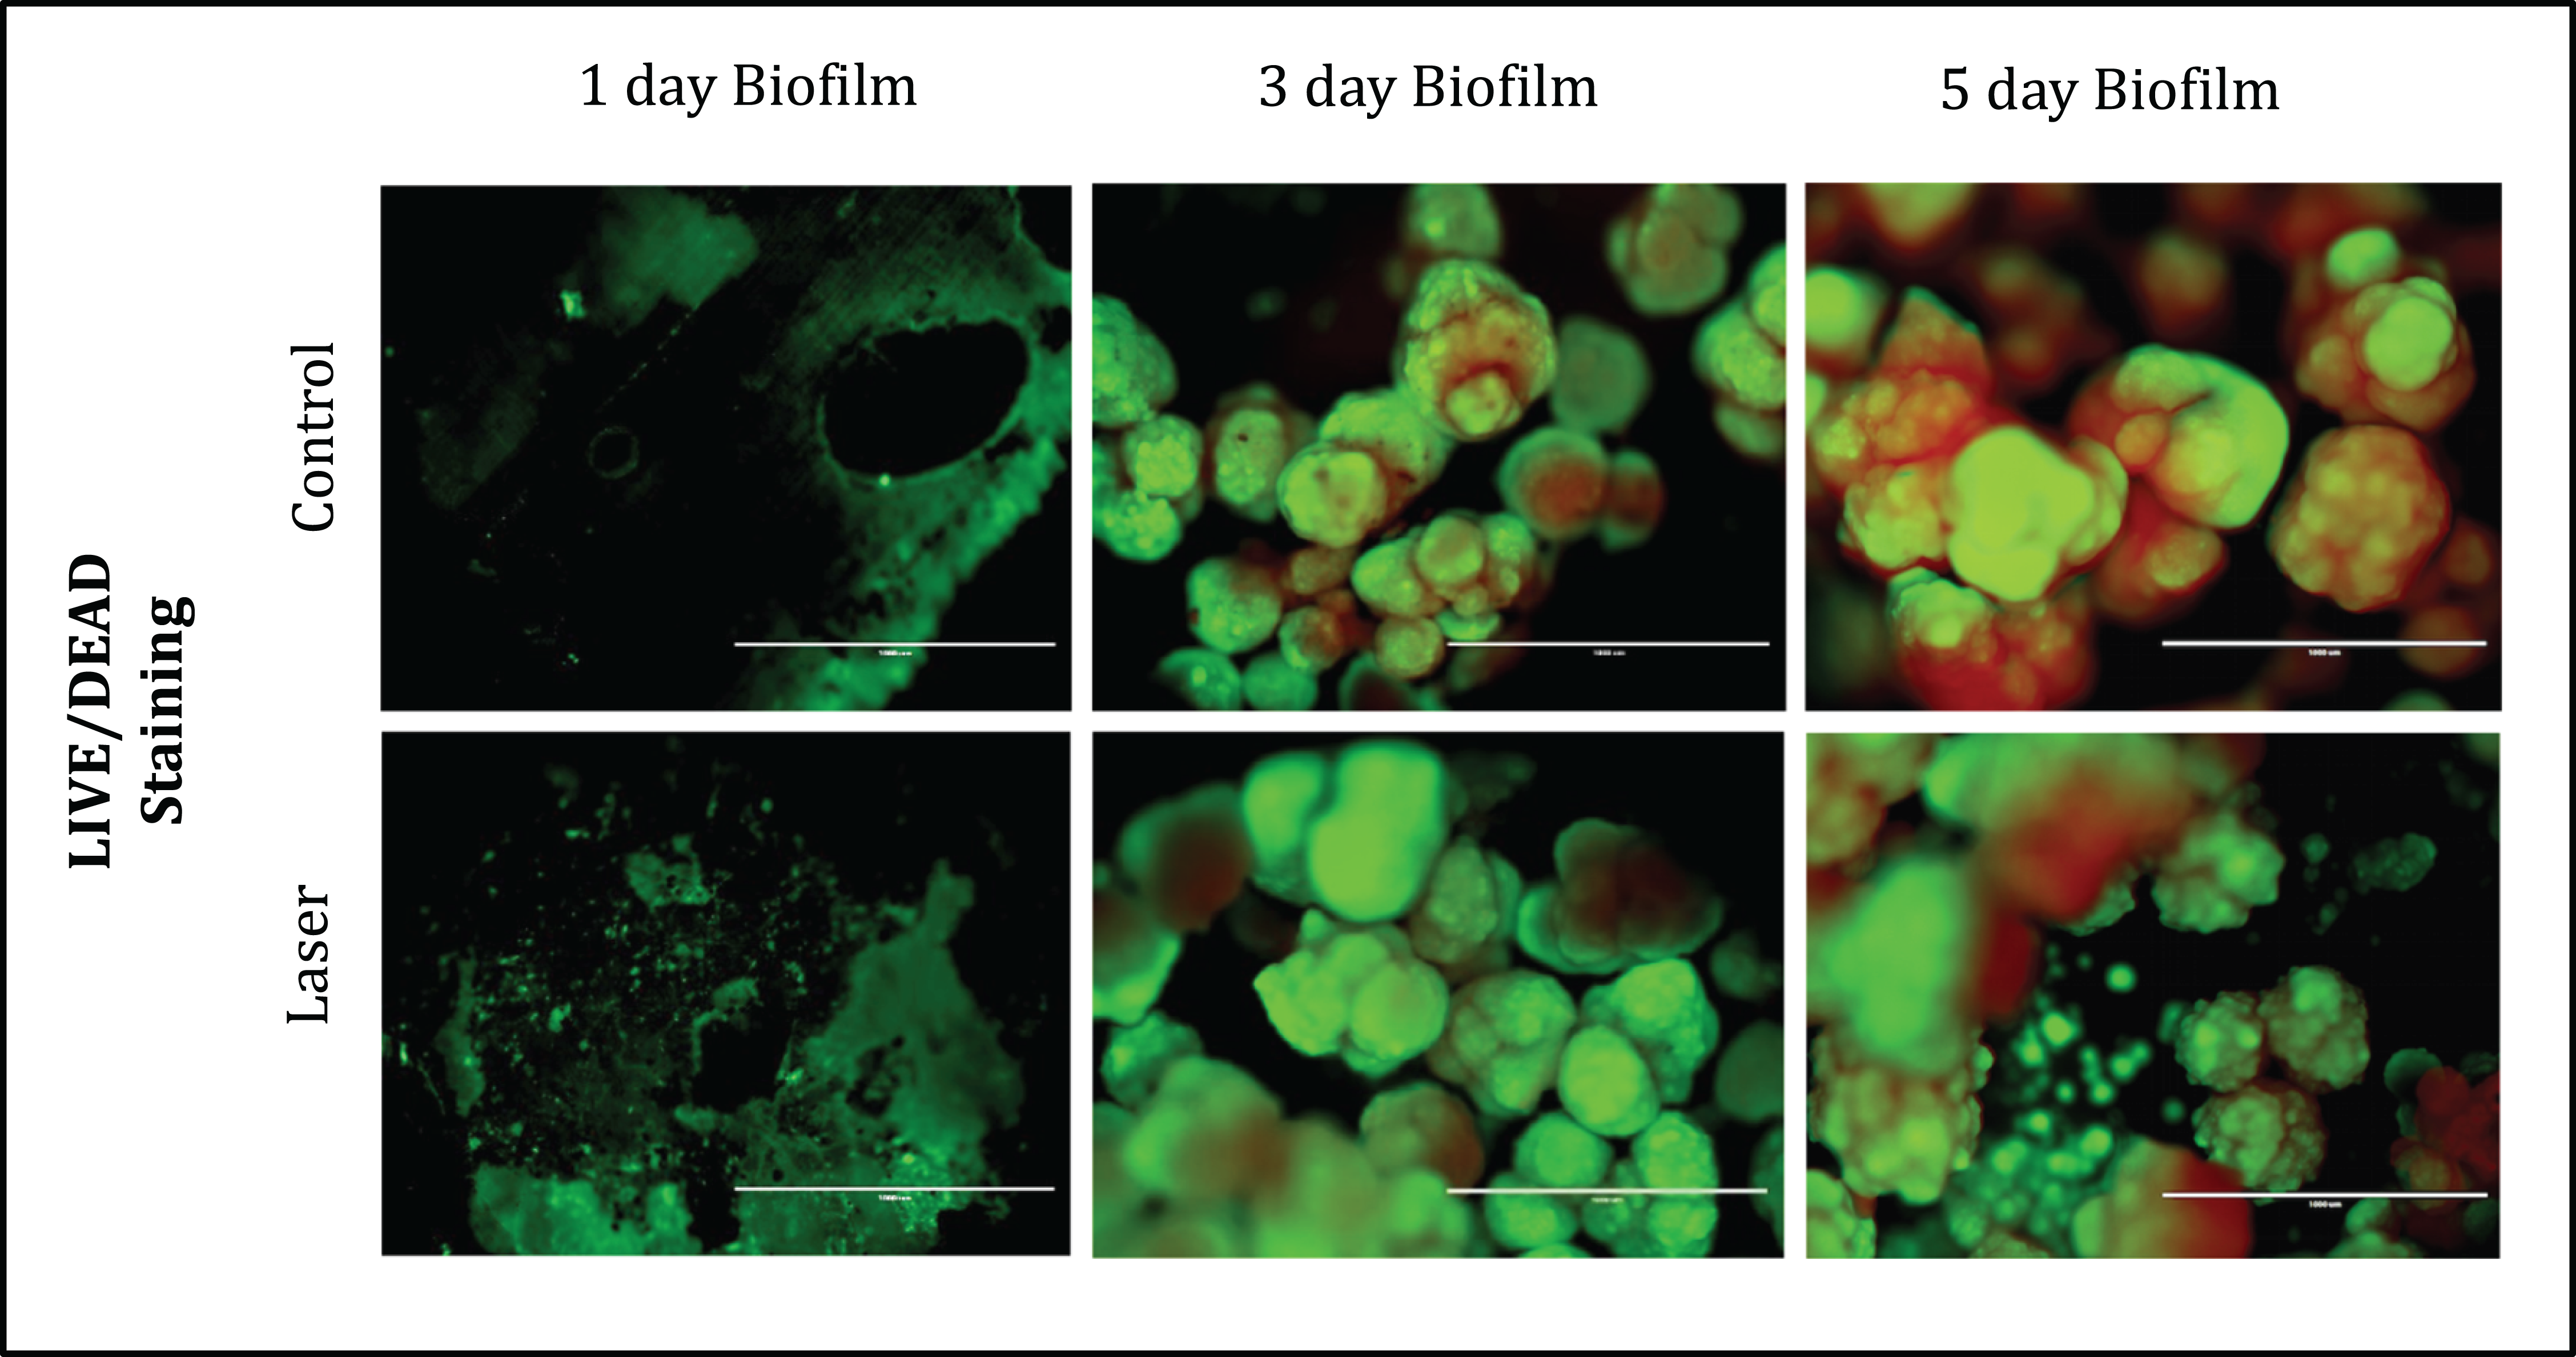 Effects of CO2 laser irradiation on matrix-rich biofilm development